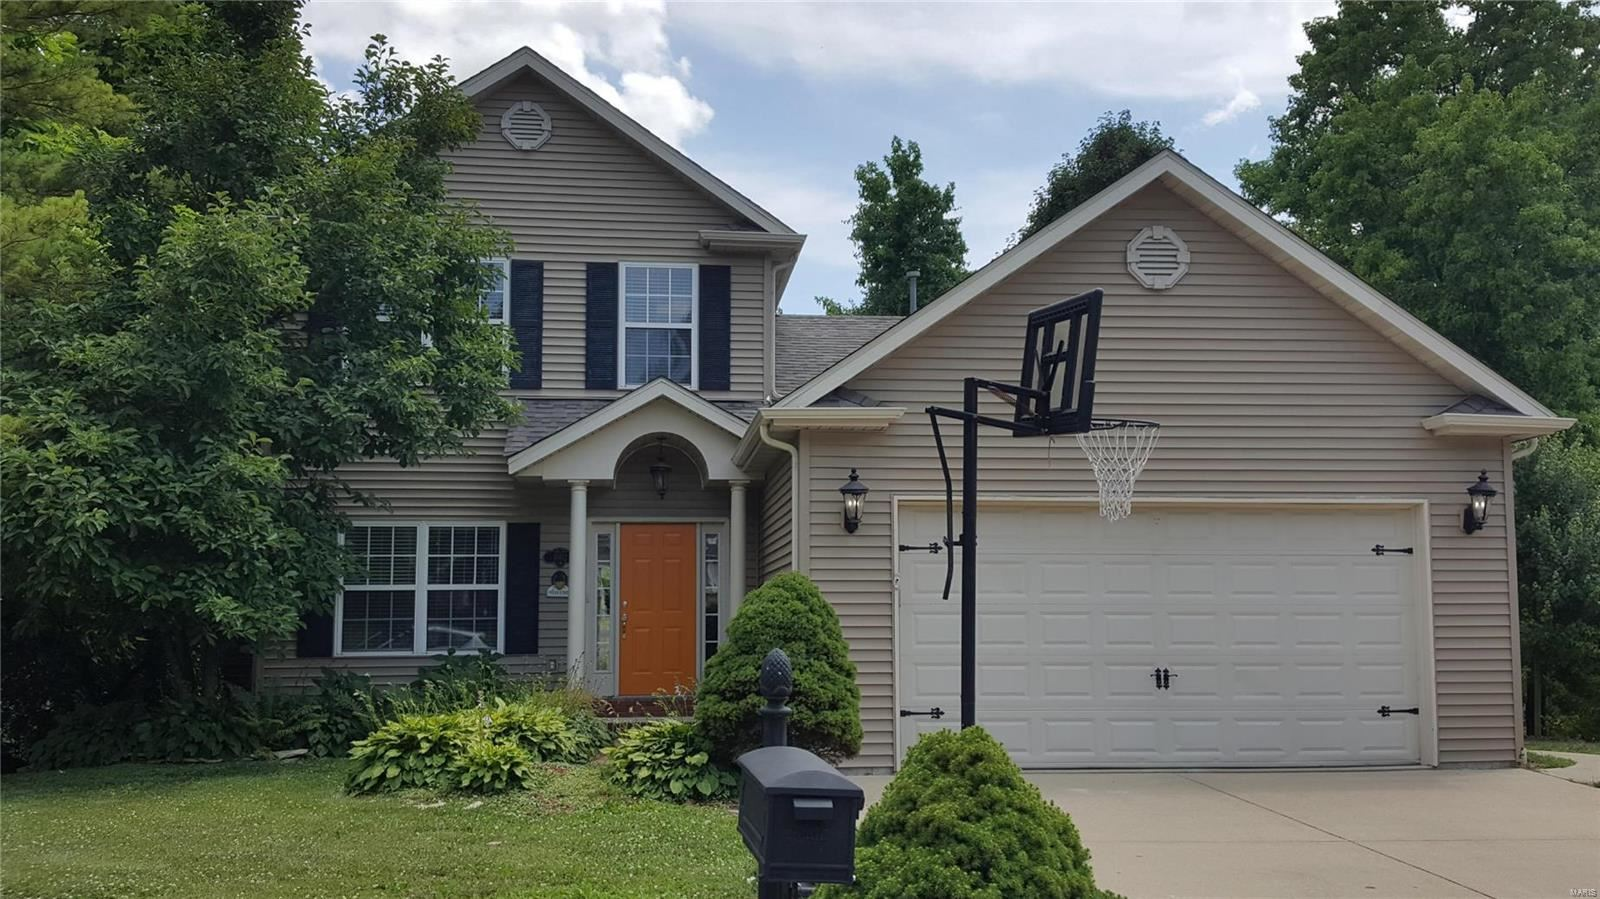 1002 Hickory Point, Collinsville, IL 62234 - MLS#: 20044568